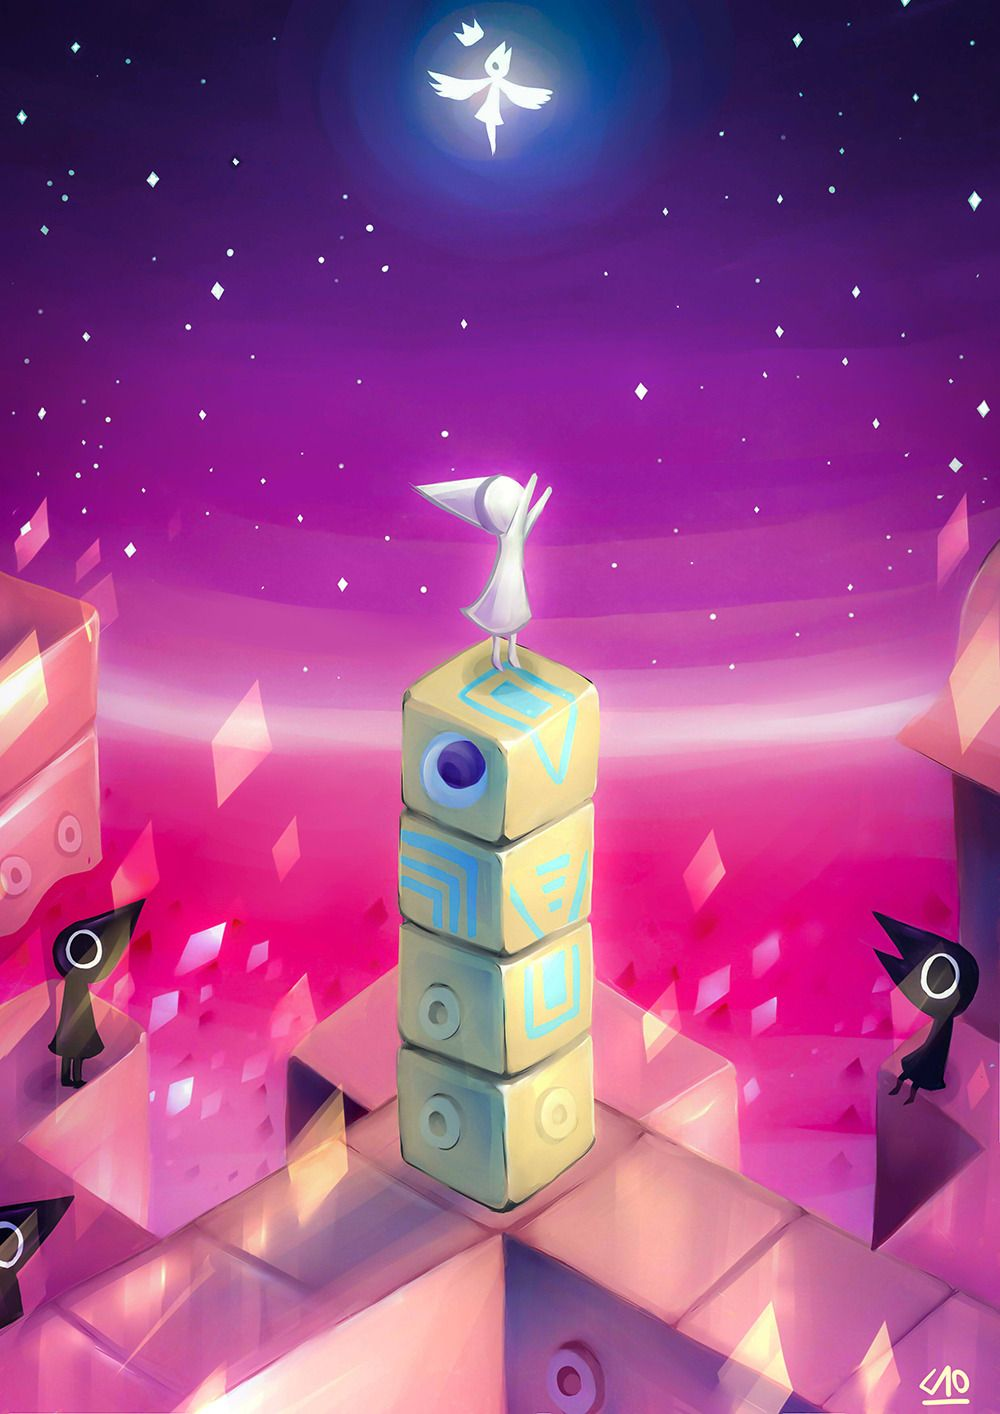 Pin By J J Burns On Monument Valley Monument Valley Game Monument Valley Art